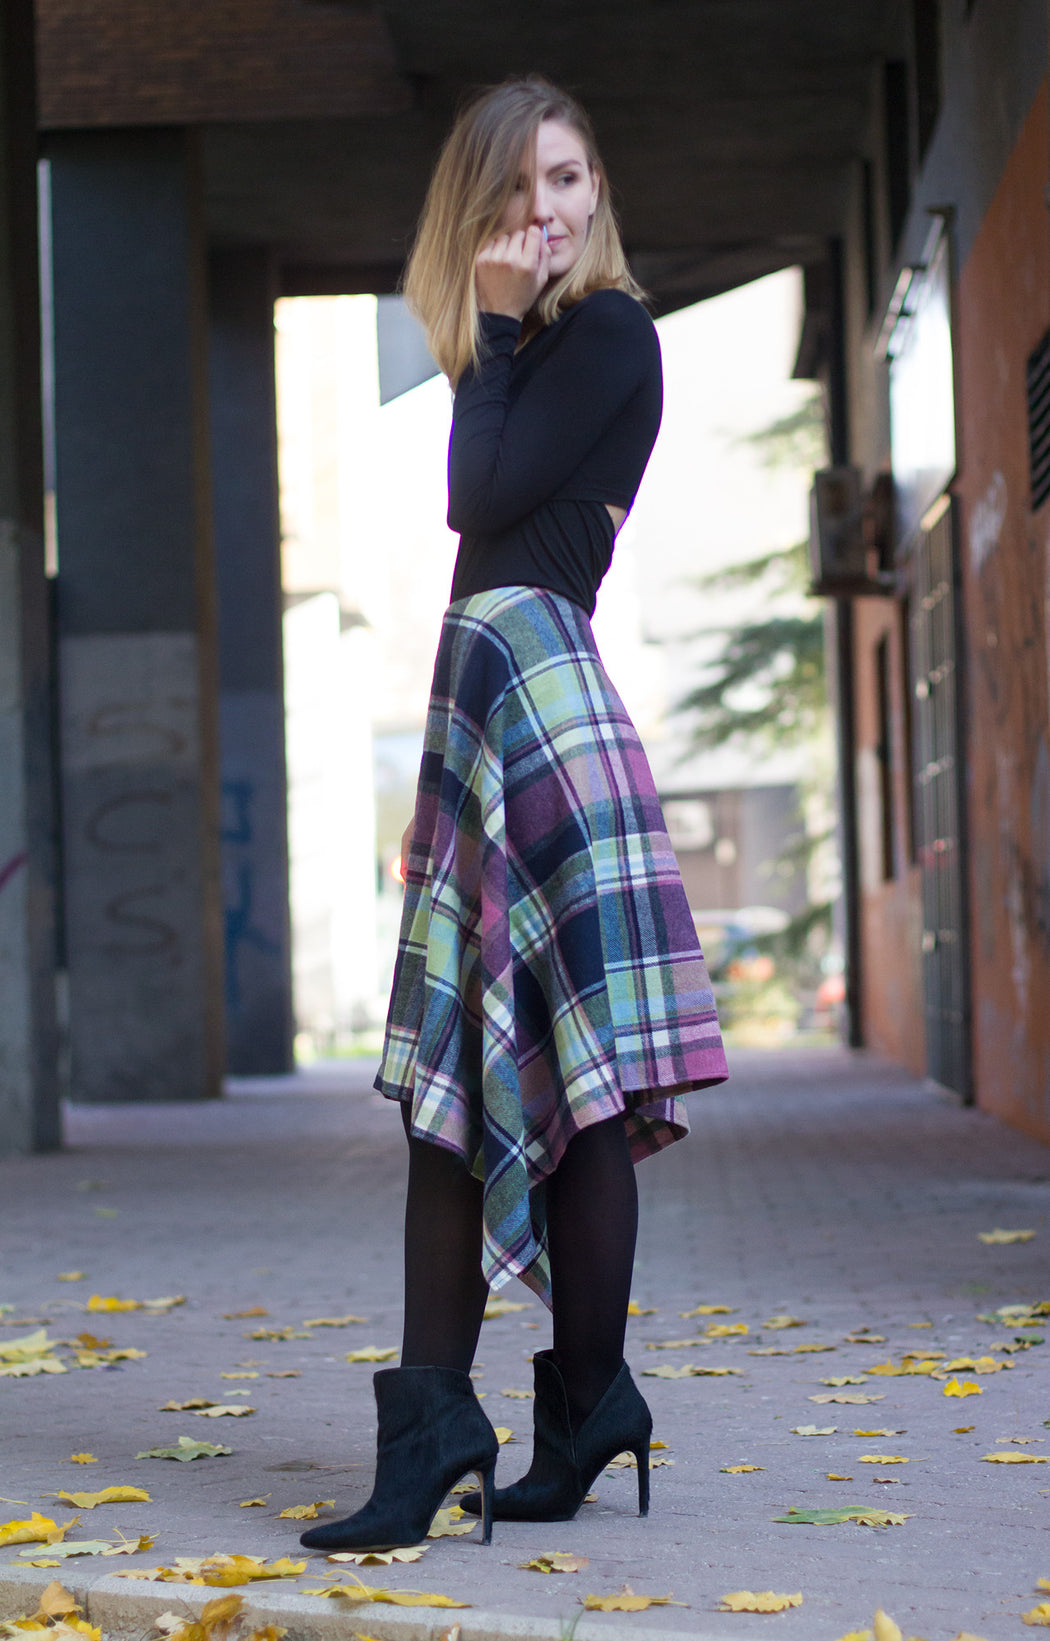 Blanket gypsy skirt - BastetNoir